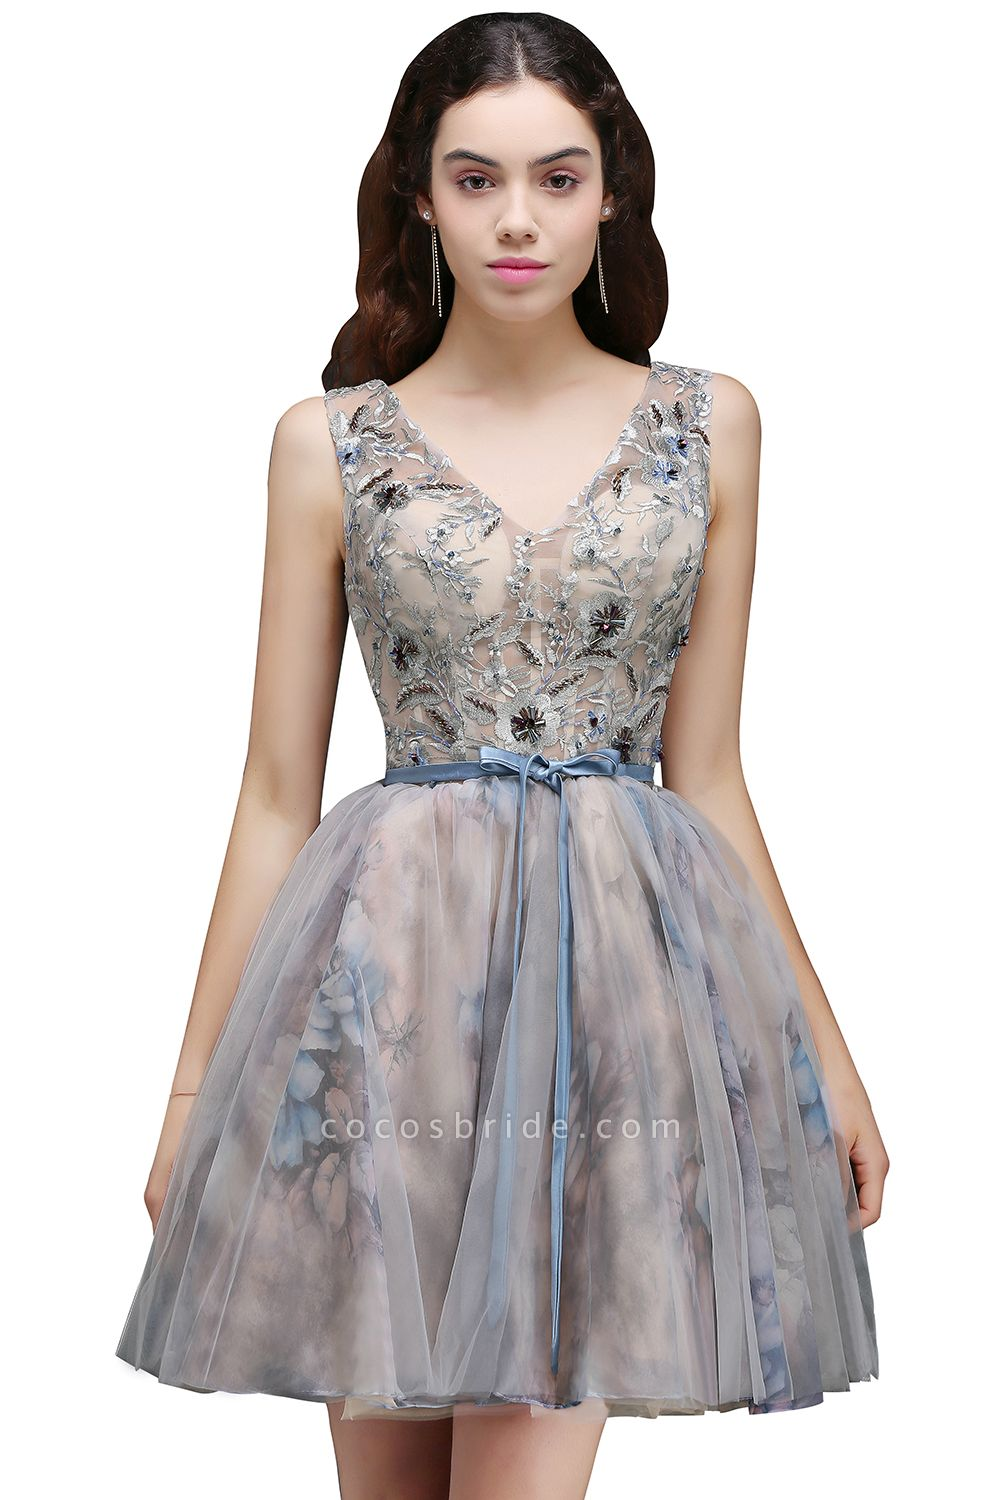 Wonderful Straps Satin A-line Homecoming Dress